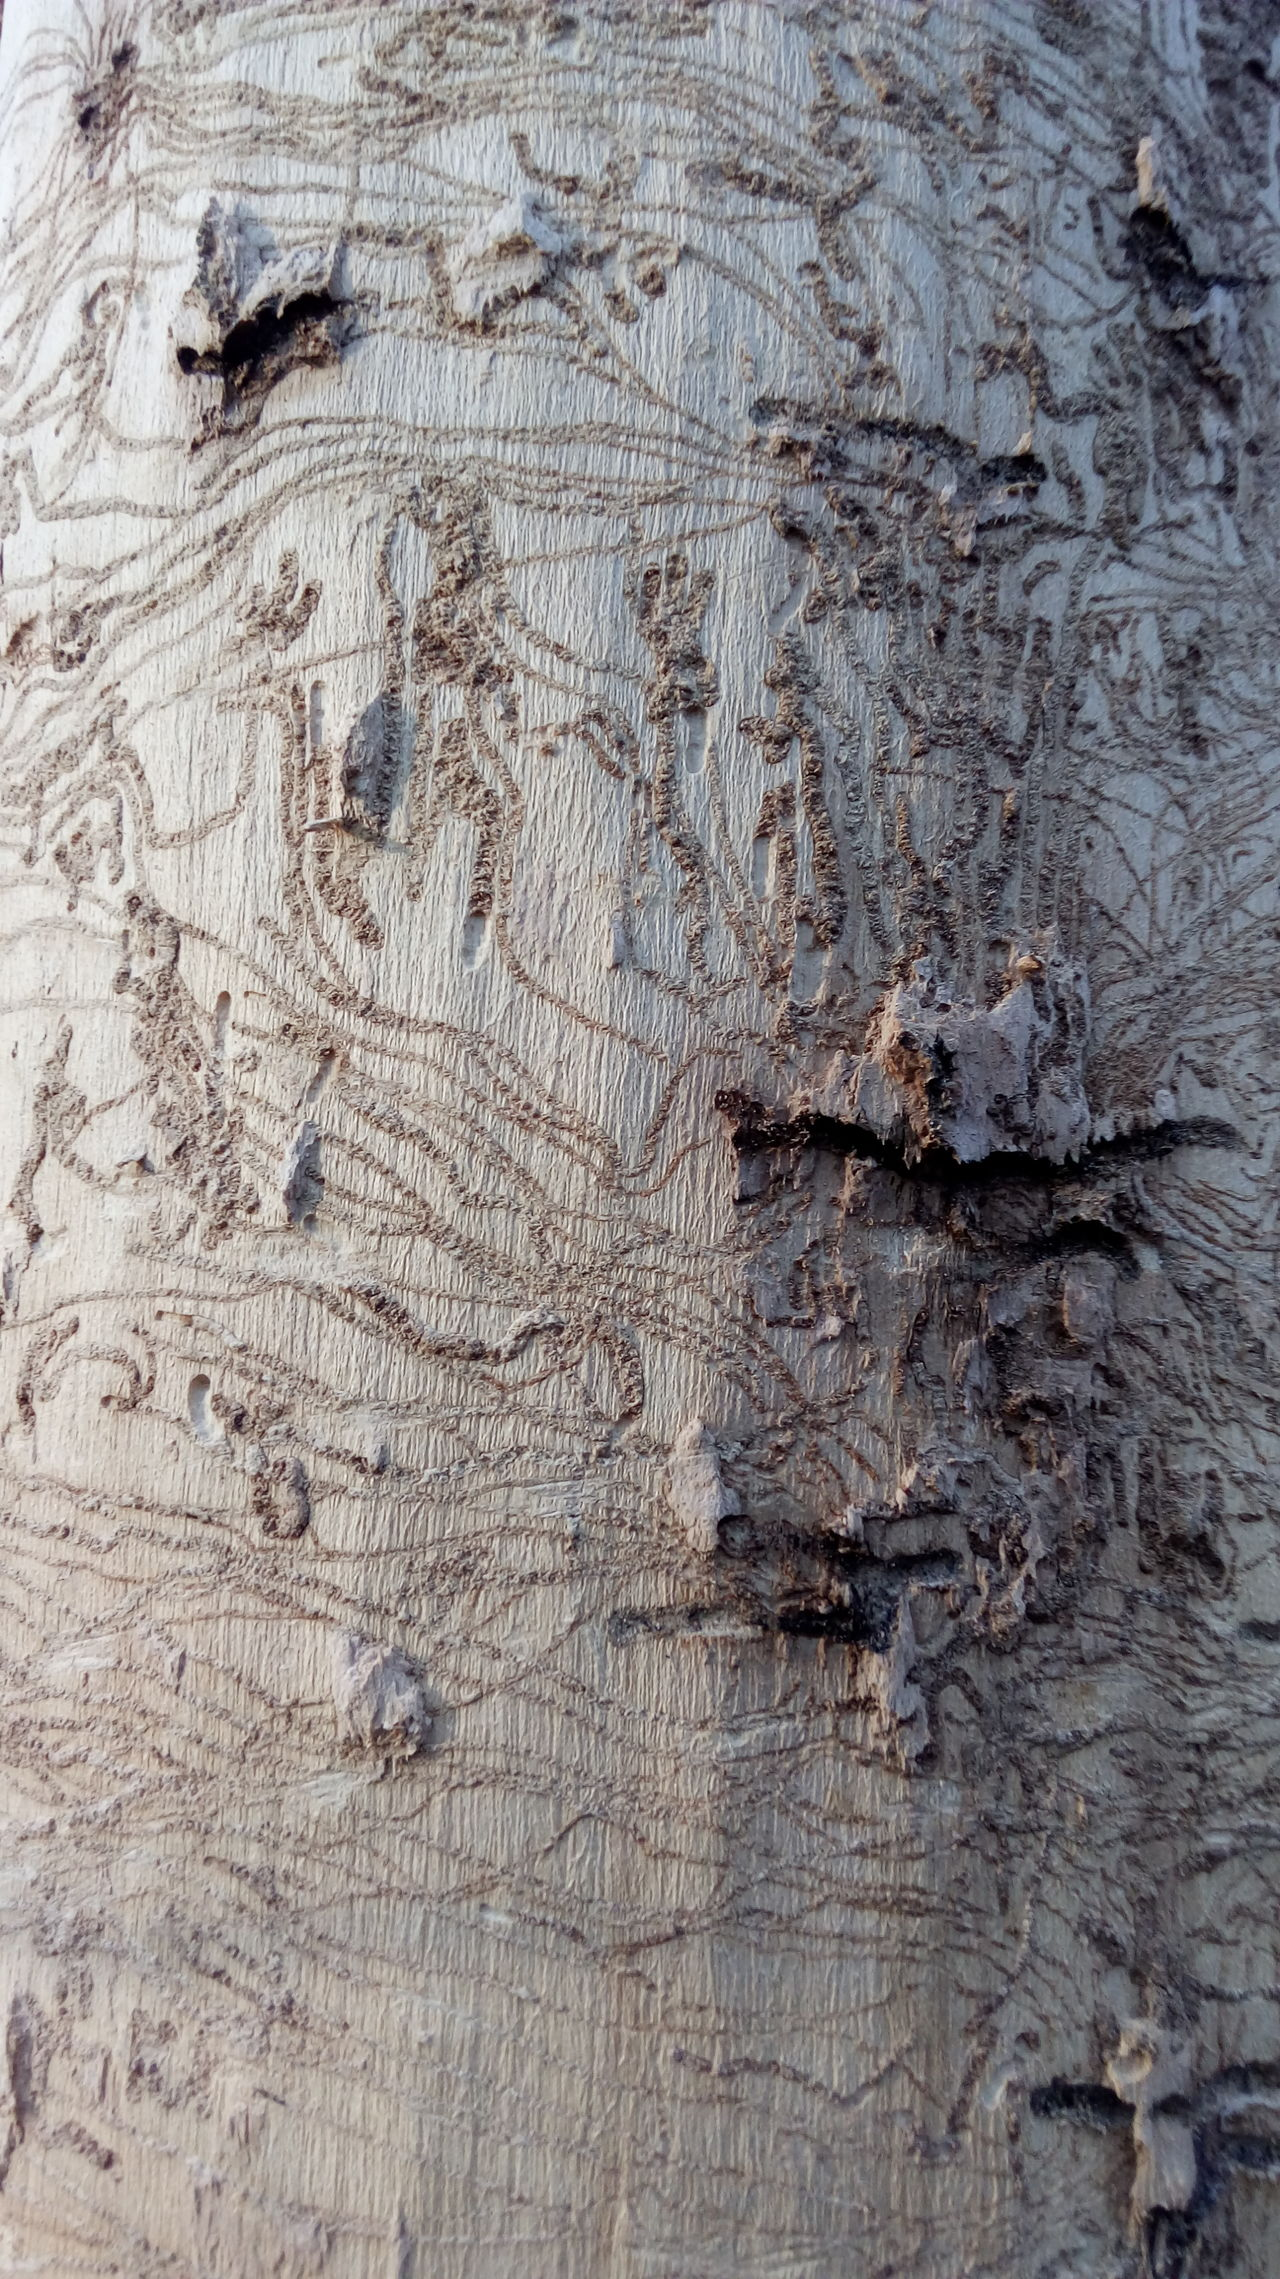 Pattern Outdoors Nature Tree Textured  Pattern, Texture, Shape And Form Patterns In Nature OriginalPhoto Originalpicture Nature_ Collection  Tree Trunk Bore Backgrounds Full Frame No People Close-up Textured  Nature Day EyeAmNewHere EyeEmNewHere